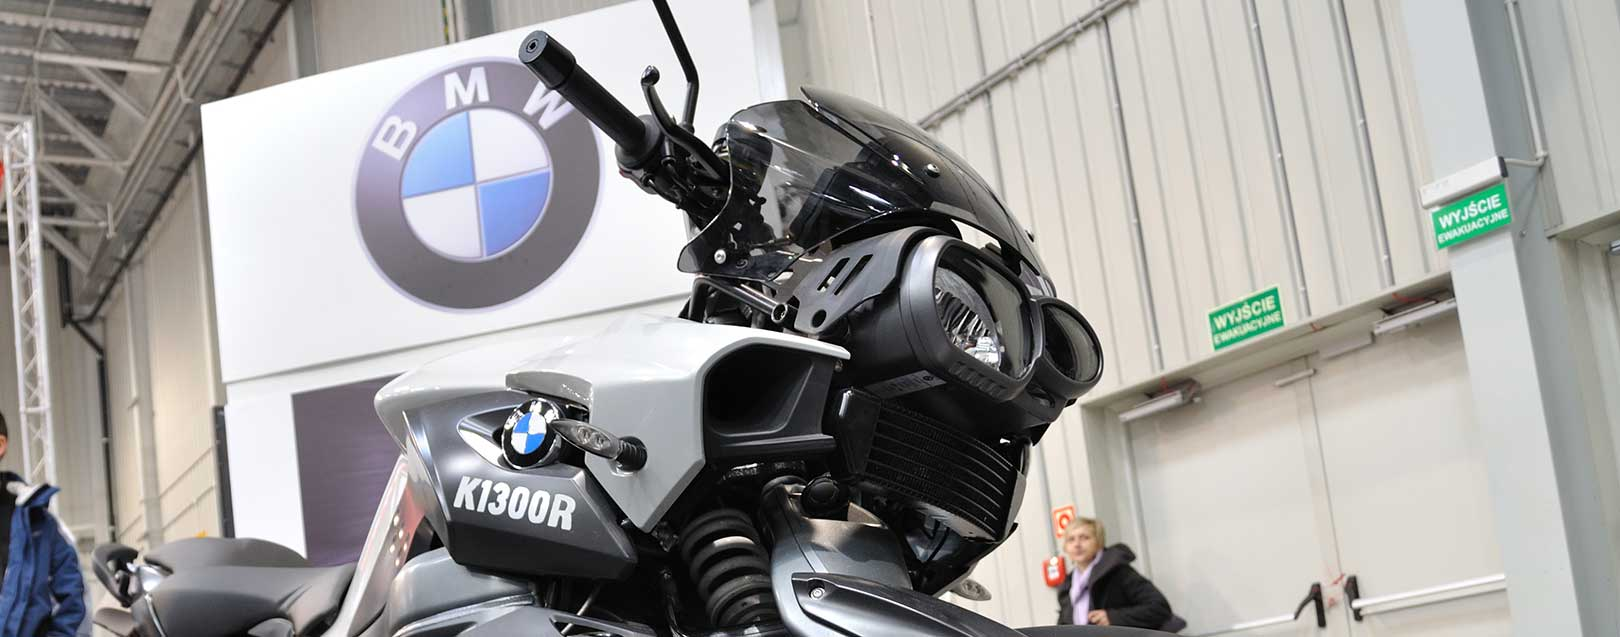 BMW Motorrad begins operations in India